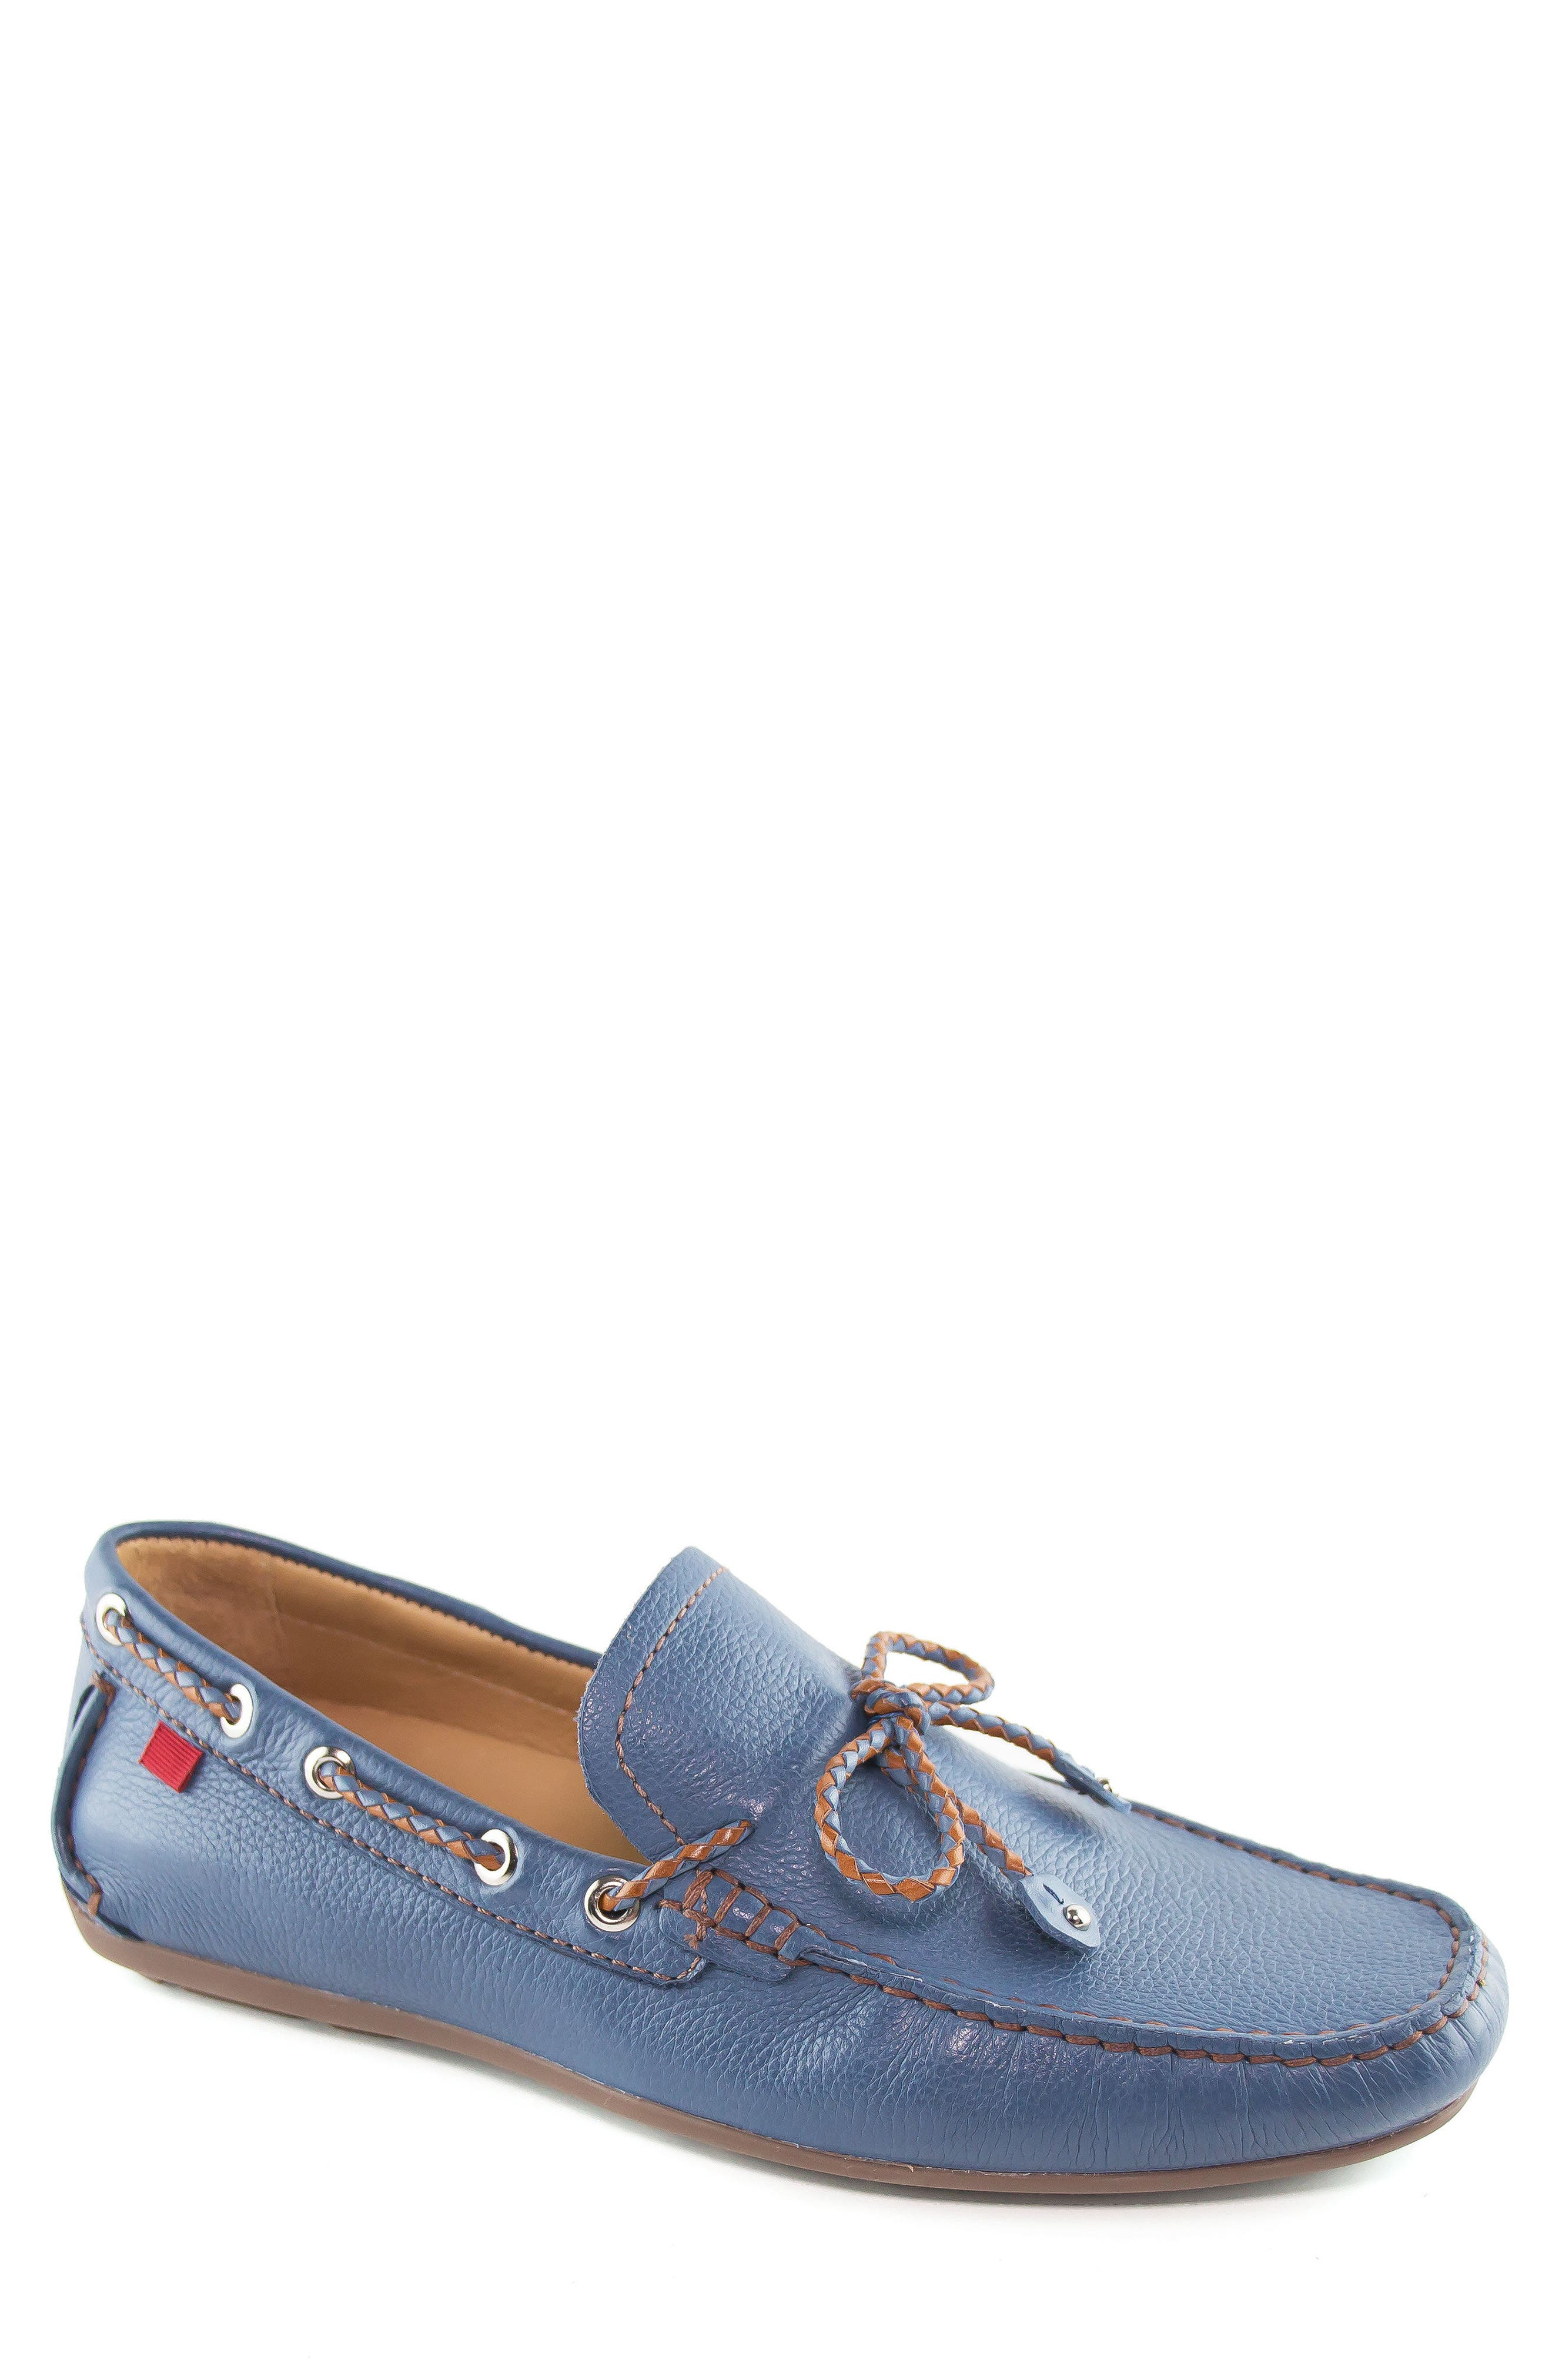 'Cypress' Moccasin,                             Main thumbnail 1, color,                             STEEL BLUE